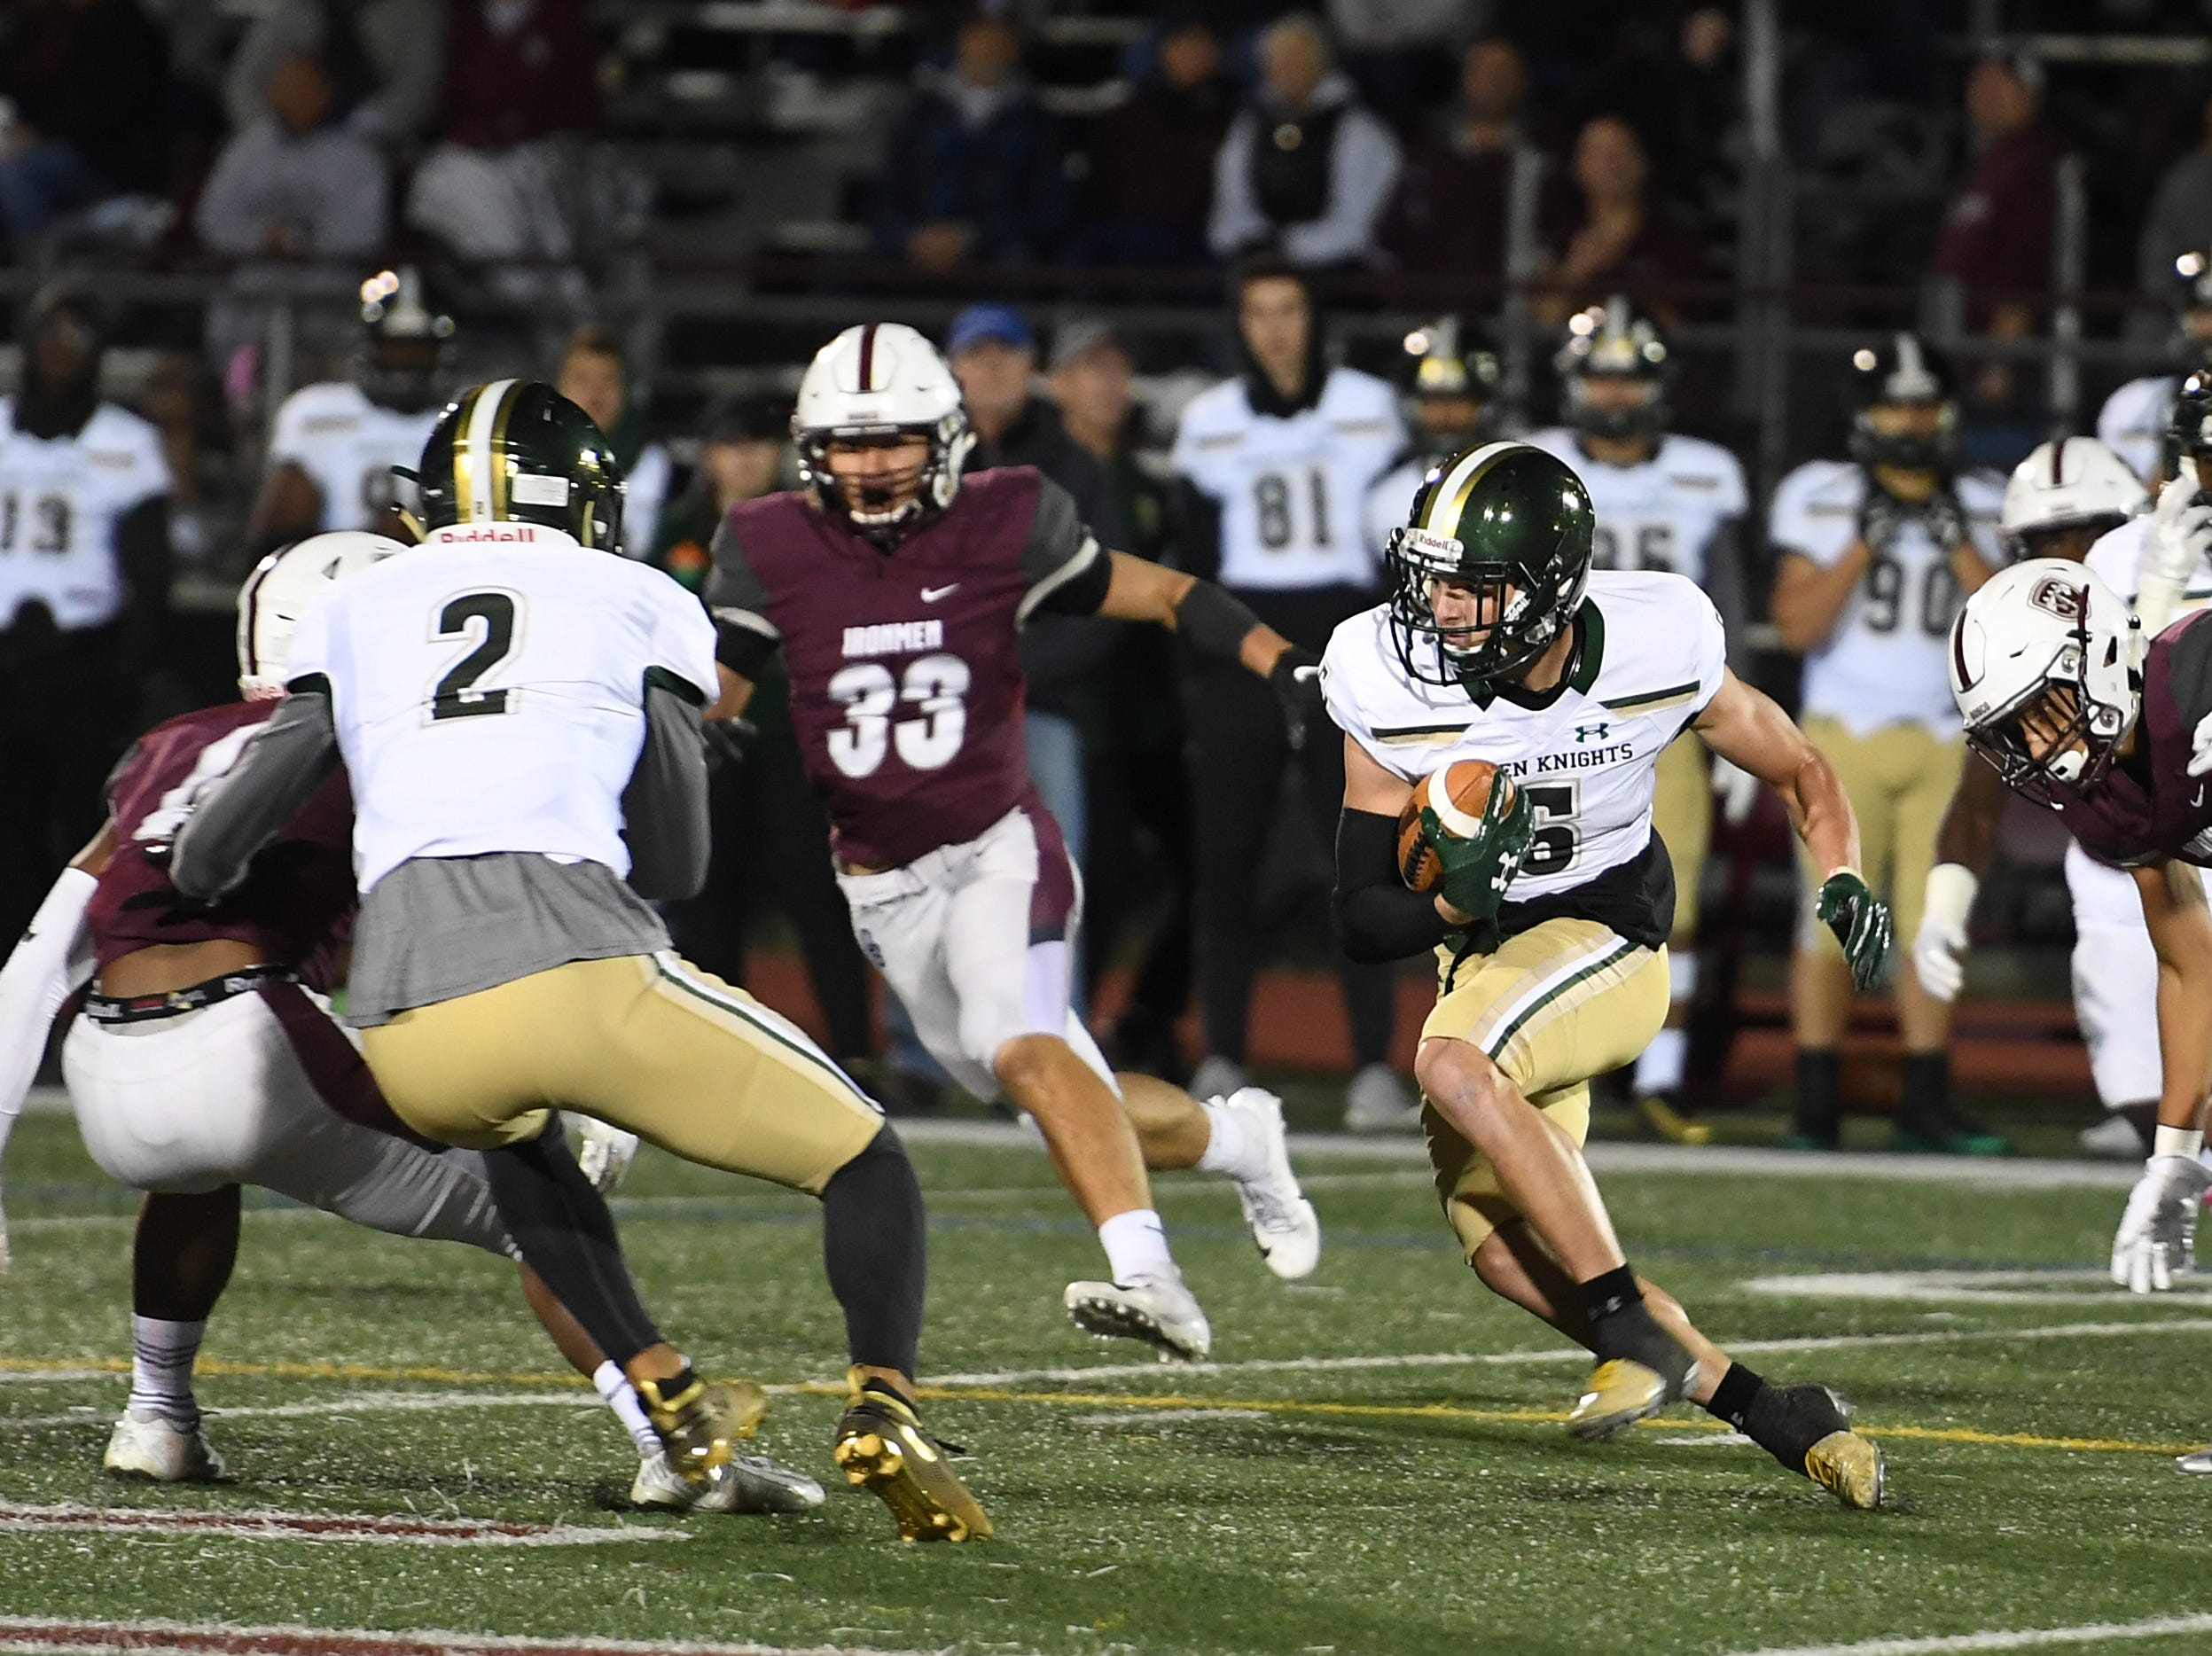 St. Joseph at Don Bosco on Friday, October 12, 2018. SJ #5 Gavin Sharkey in the first quarter.